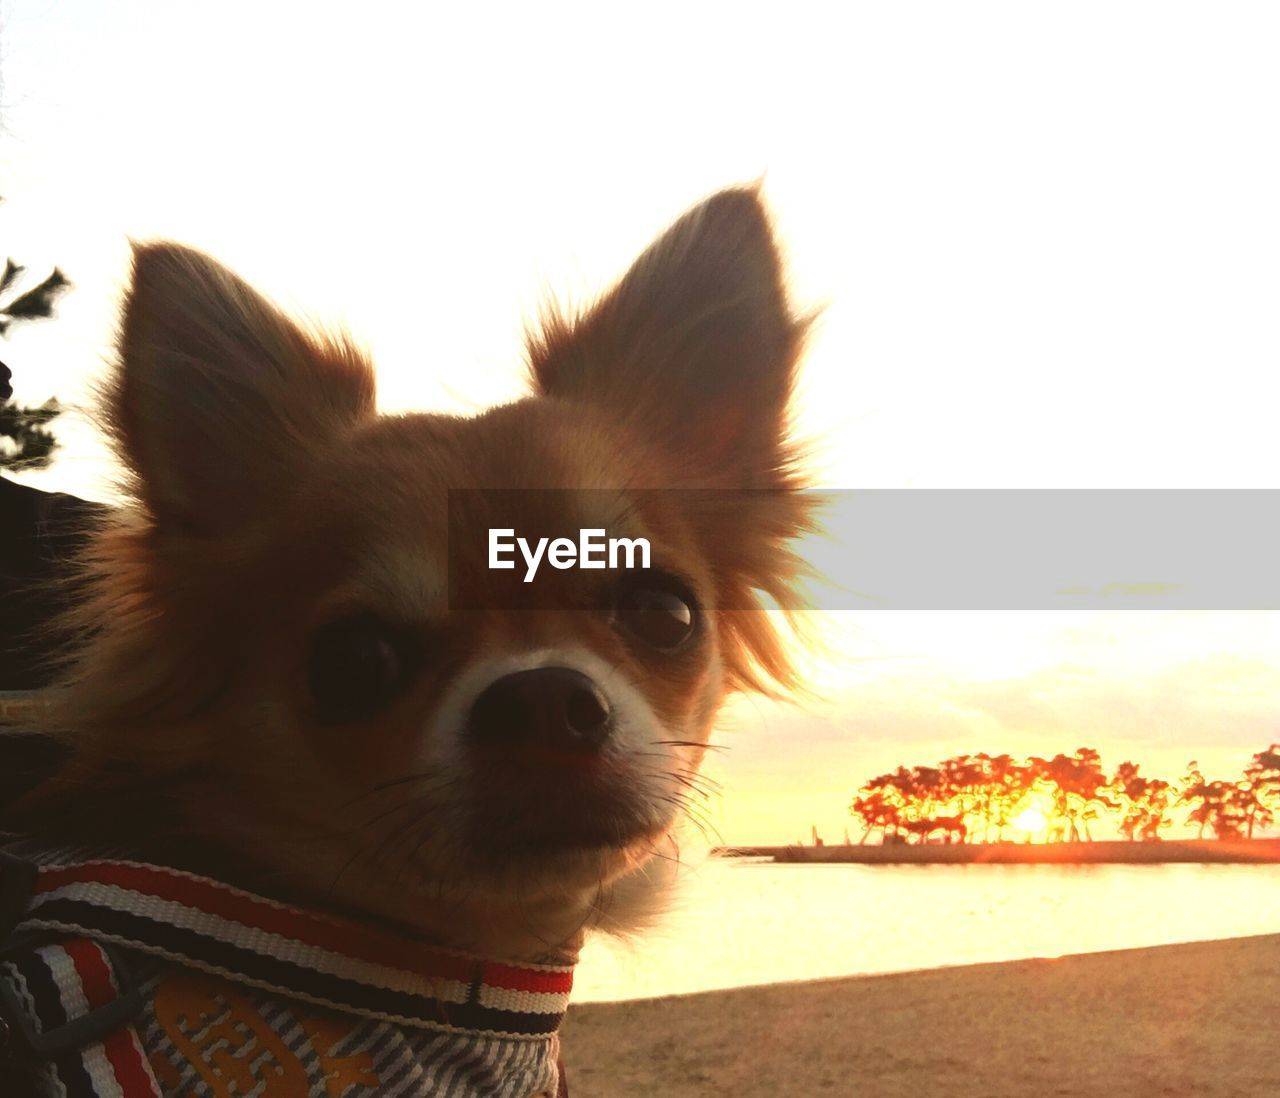 dog, one animal, pets, domestic animals, animal themes, mammal, close-up, no people, outdoors, sky, day, nature